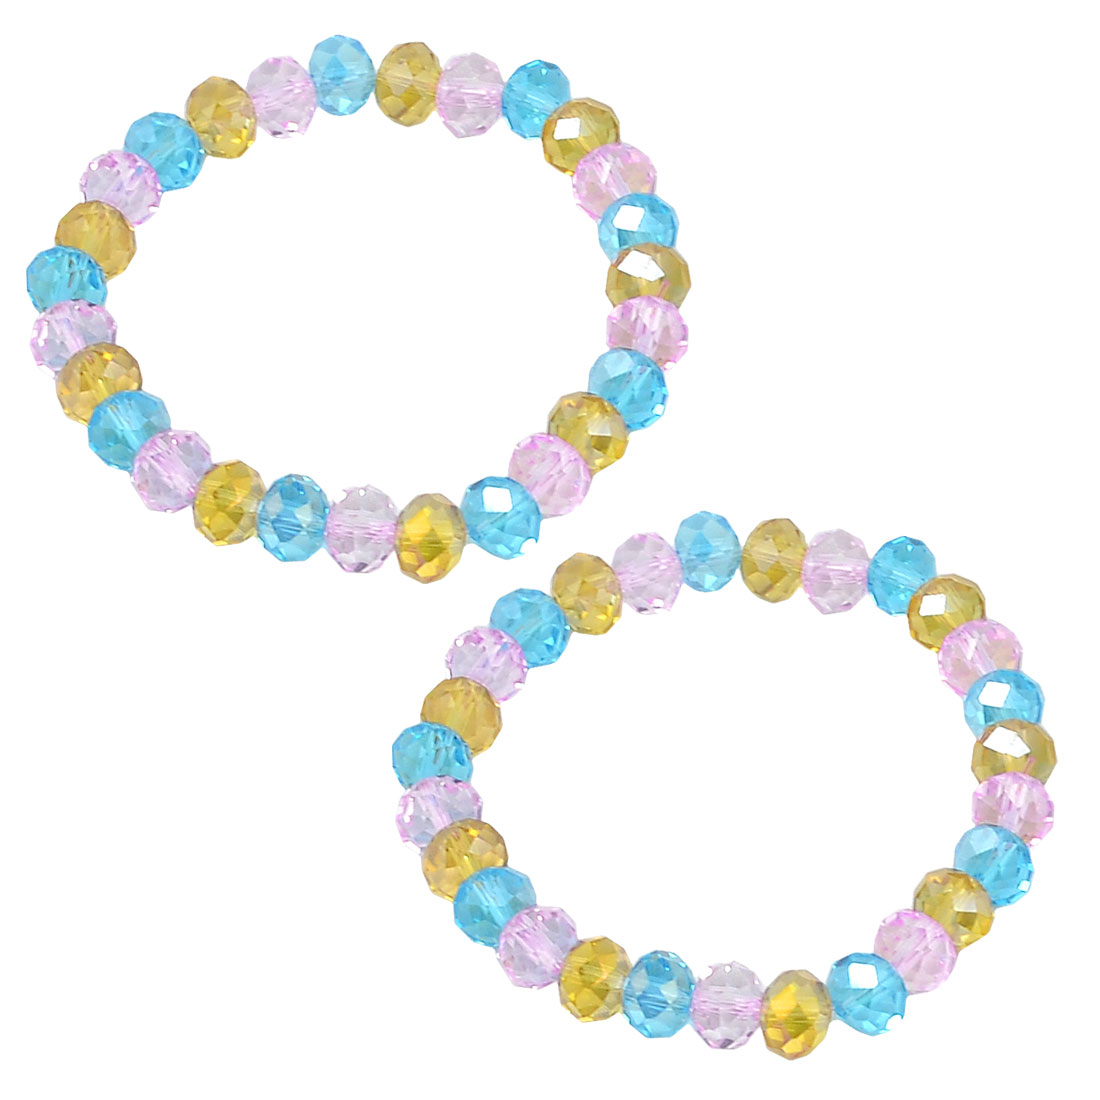 Women Tri Colors 8mm Dia Faceted Crystal Bead Linked Elastic Bracelets 2 Pcs